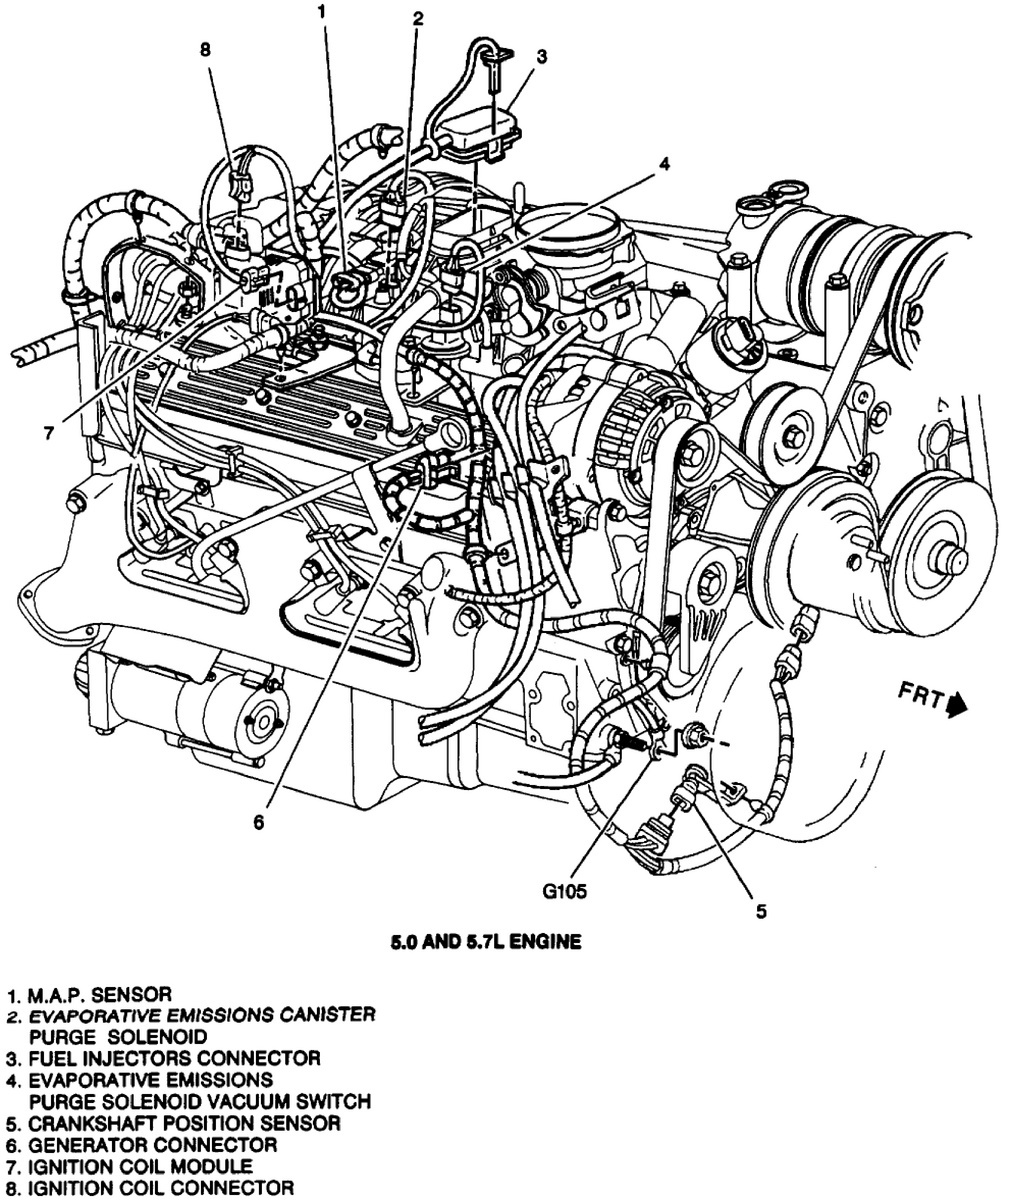 under the hood car diagram with Discussion C4307 Ds551809 on Discussion C4307 ds551809 together with Mitsubishi Starion Wiring Diagram furthermore Fan Relay Replacement Well One 947746 moreover 7dv46 Mercury Milan Premier 2008 Milan Premier No Spark Cylinder likewise Tipos De Chasis Carrocería.